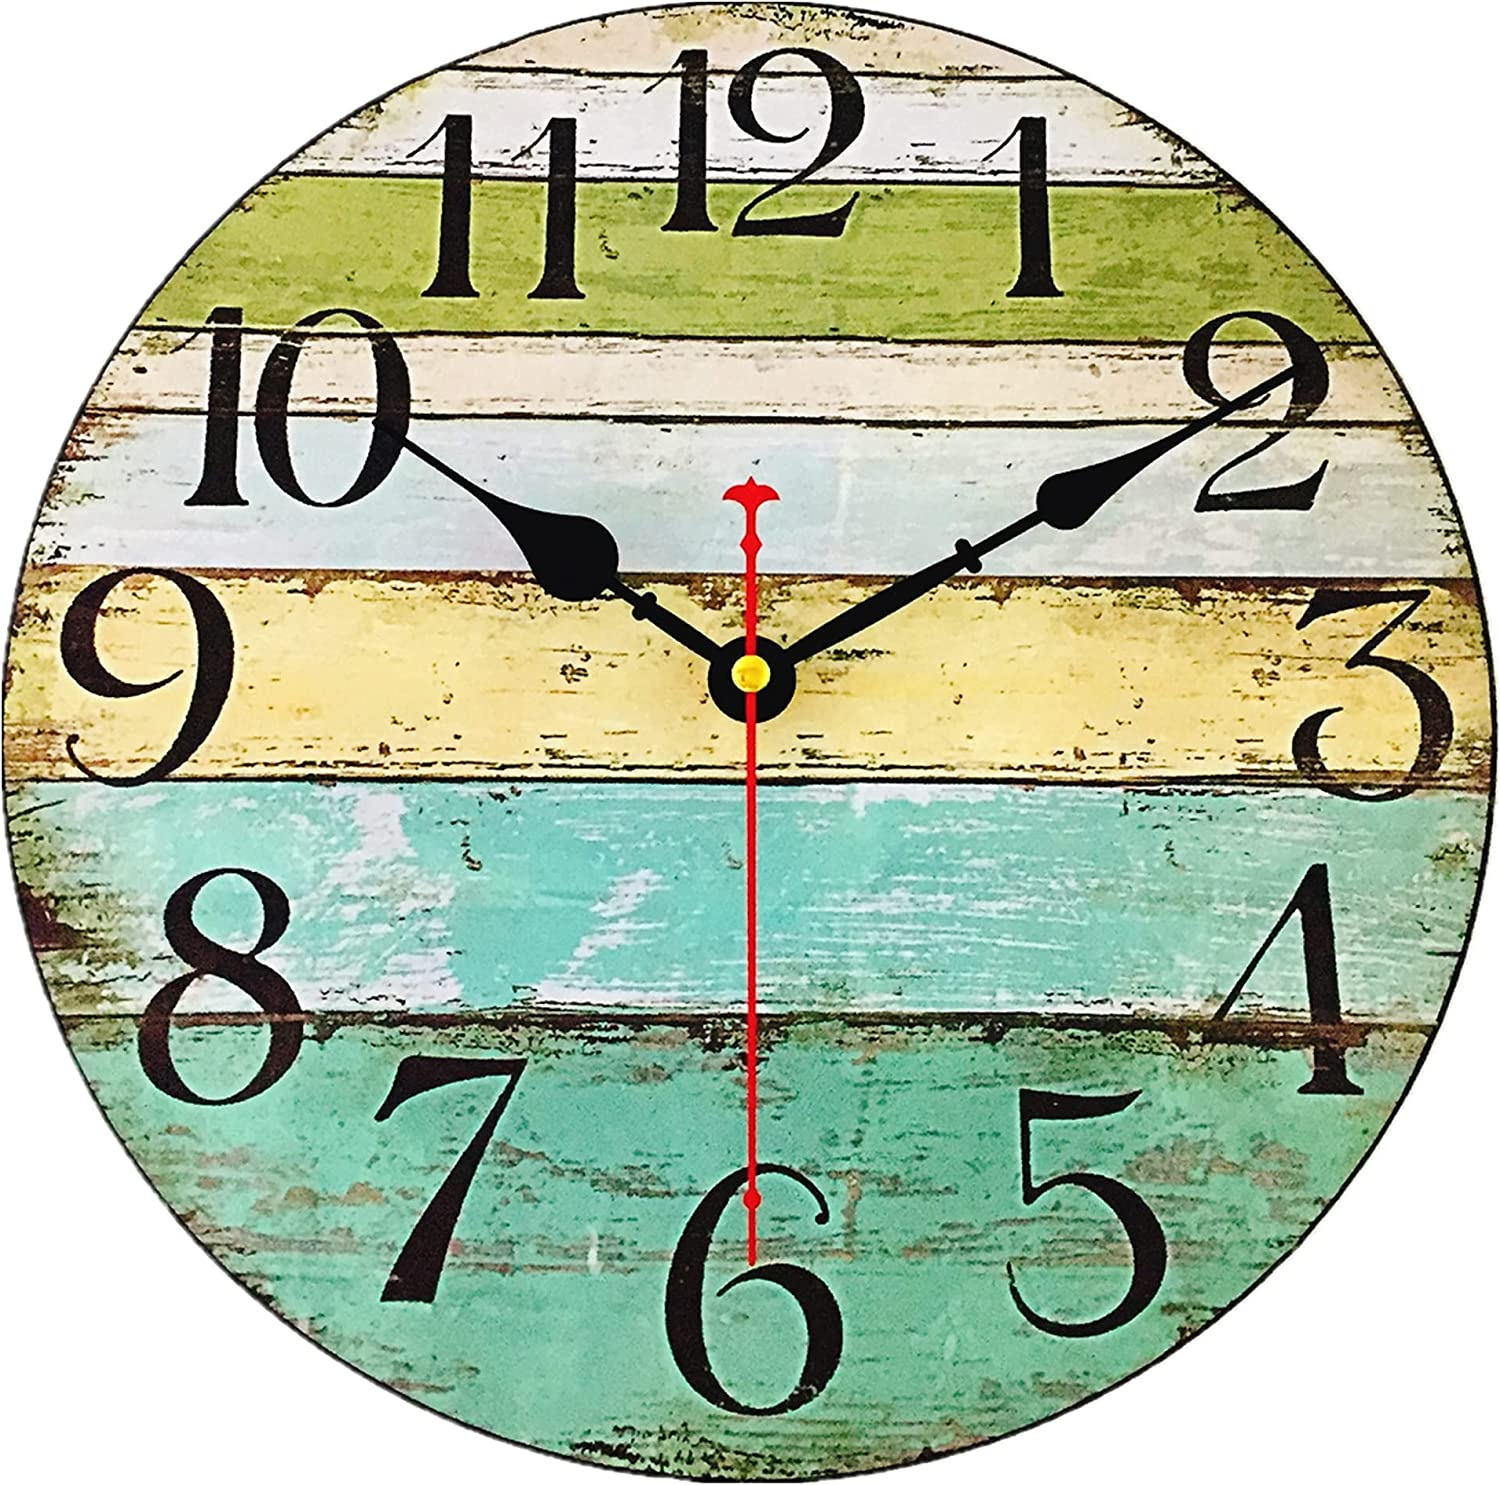 12 Inch Rustic Round Wall Clock Beach Decorative Clocks for Bedroom,Silent Analog Clocks Battery Operated,Farmhouse Decor Accessories for Home,Kitchen,Living Room